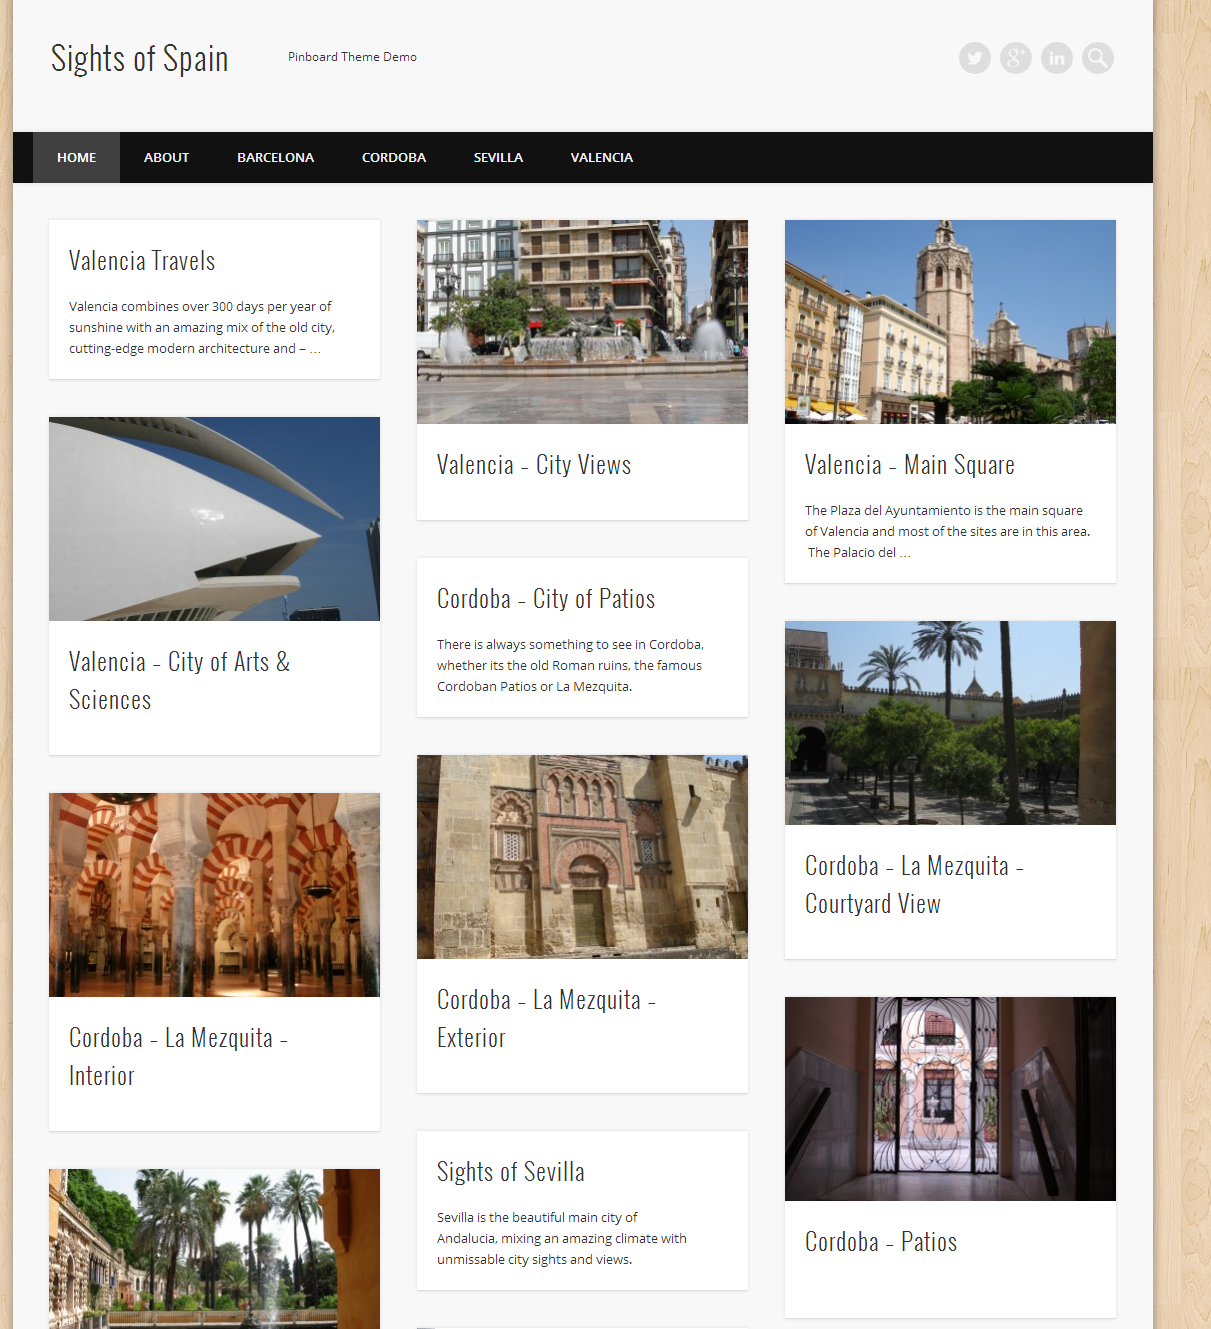 Sights of Spain - Pinboard Theme Demo - WordPress Website